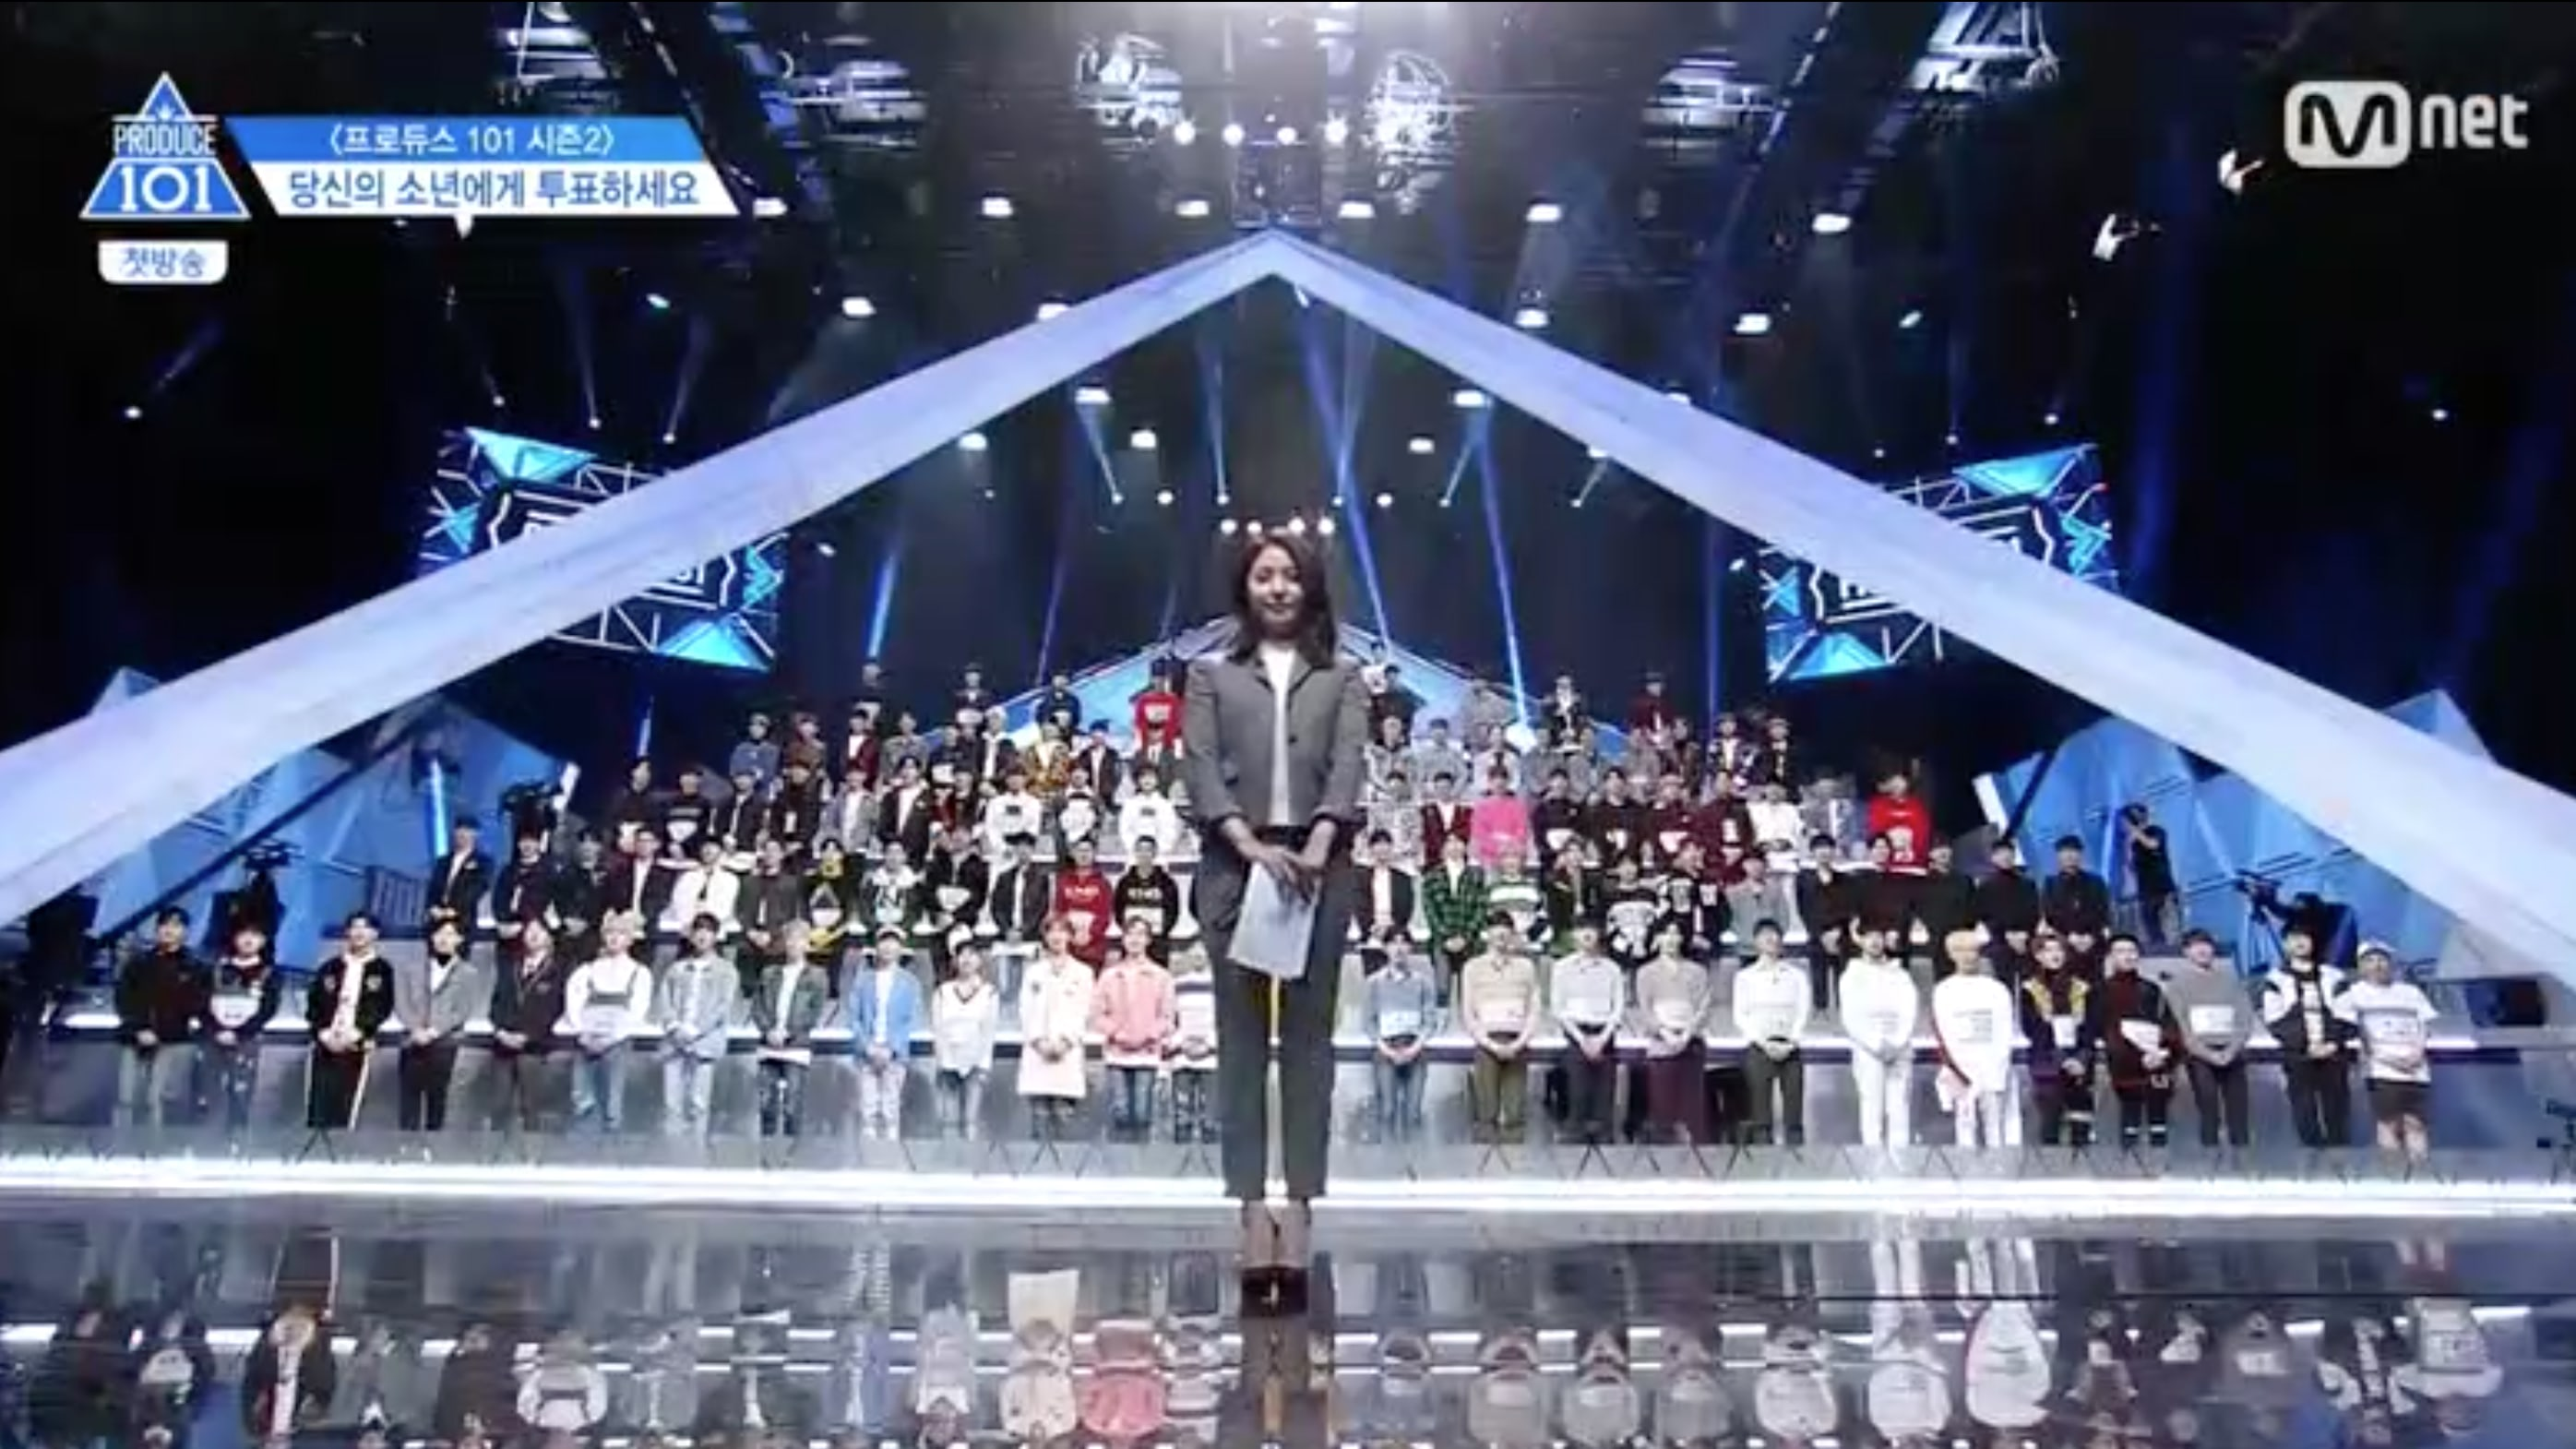 Contestants Of Produce 101 Season 2 Undergo Harsh Evaluations In First Episode